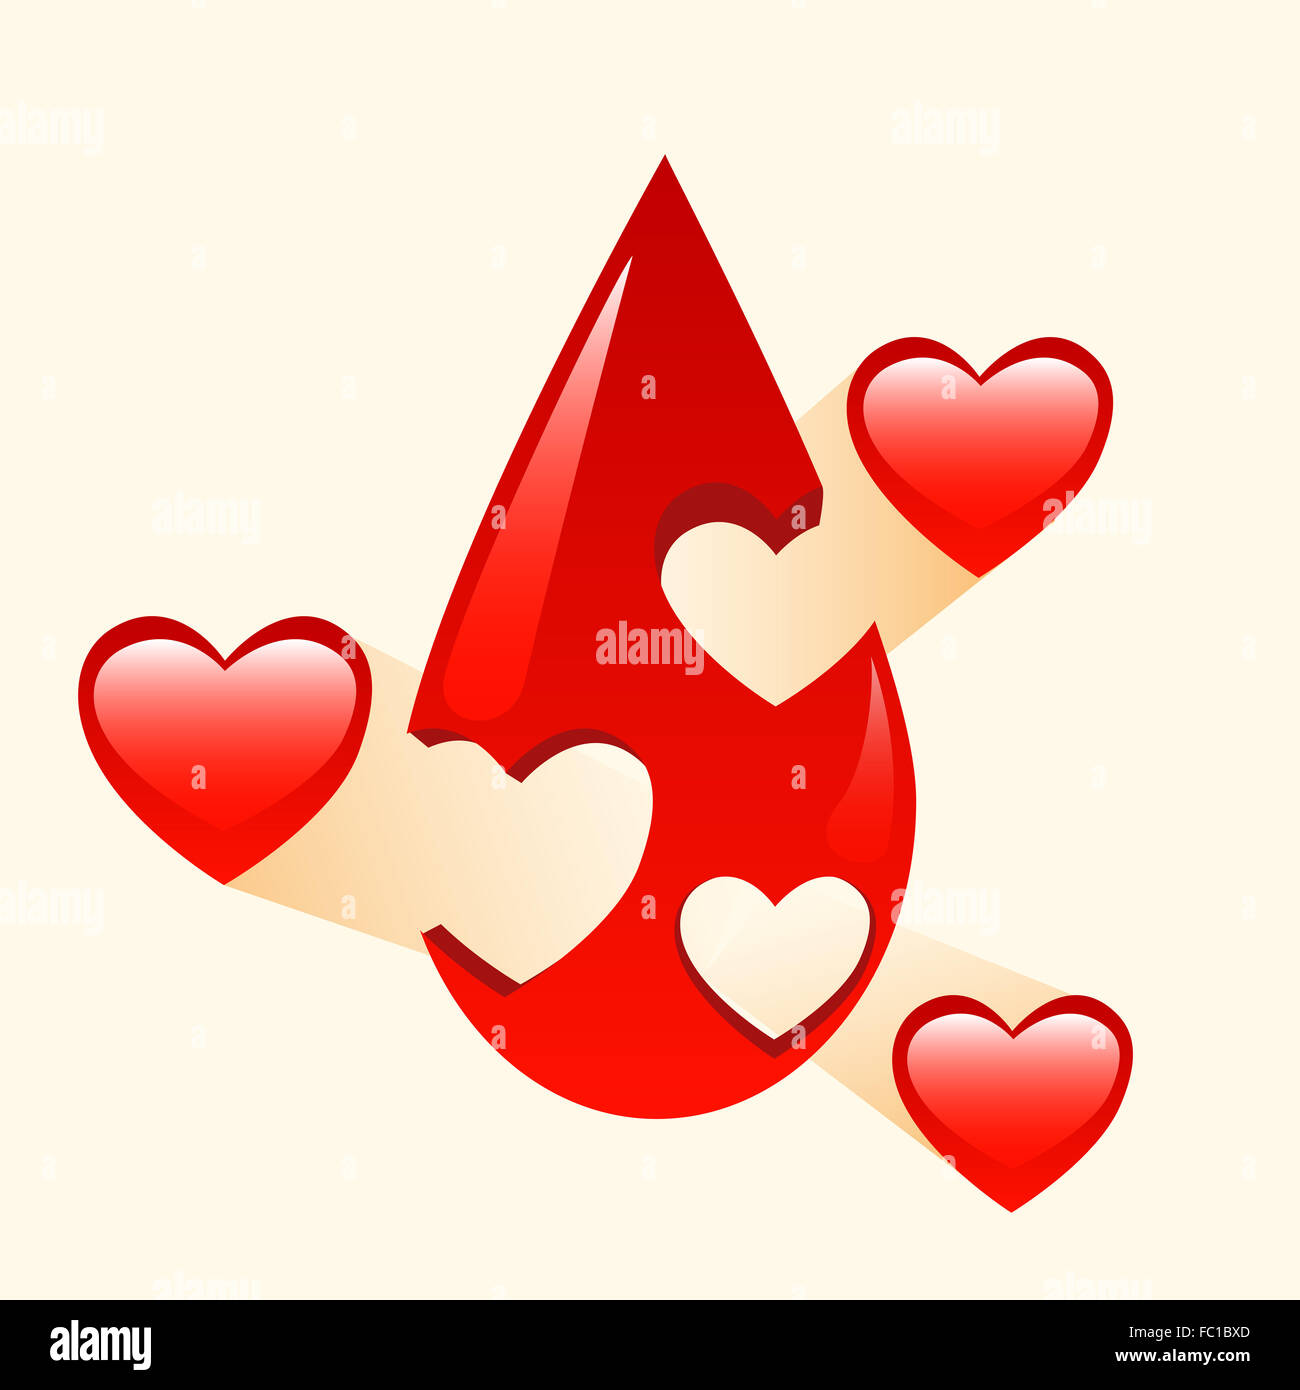 Donation of blood and organs medicine - Stock Image